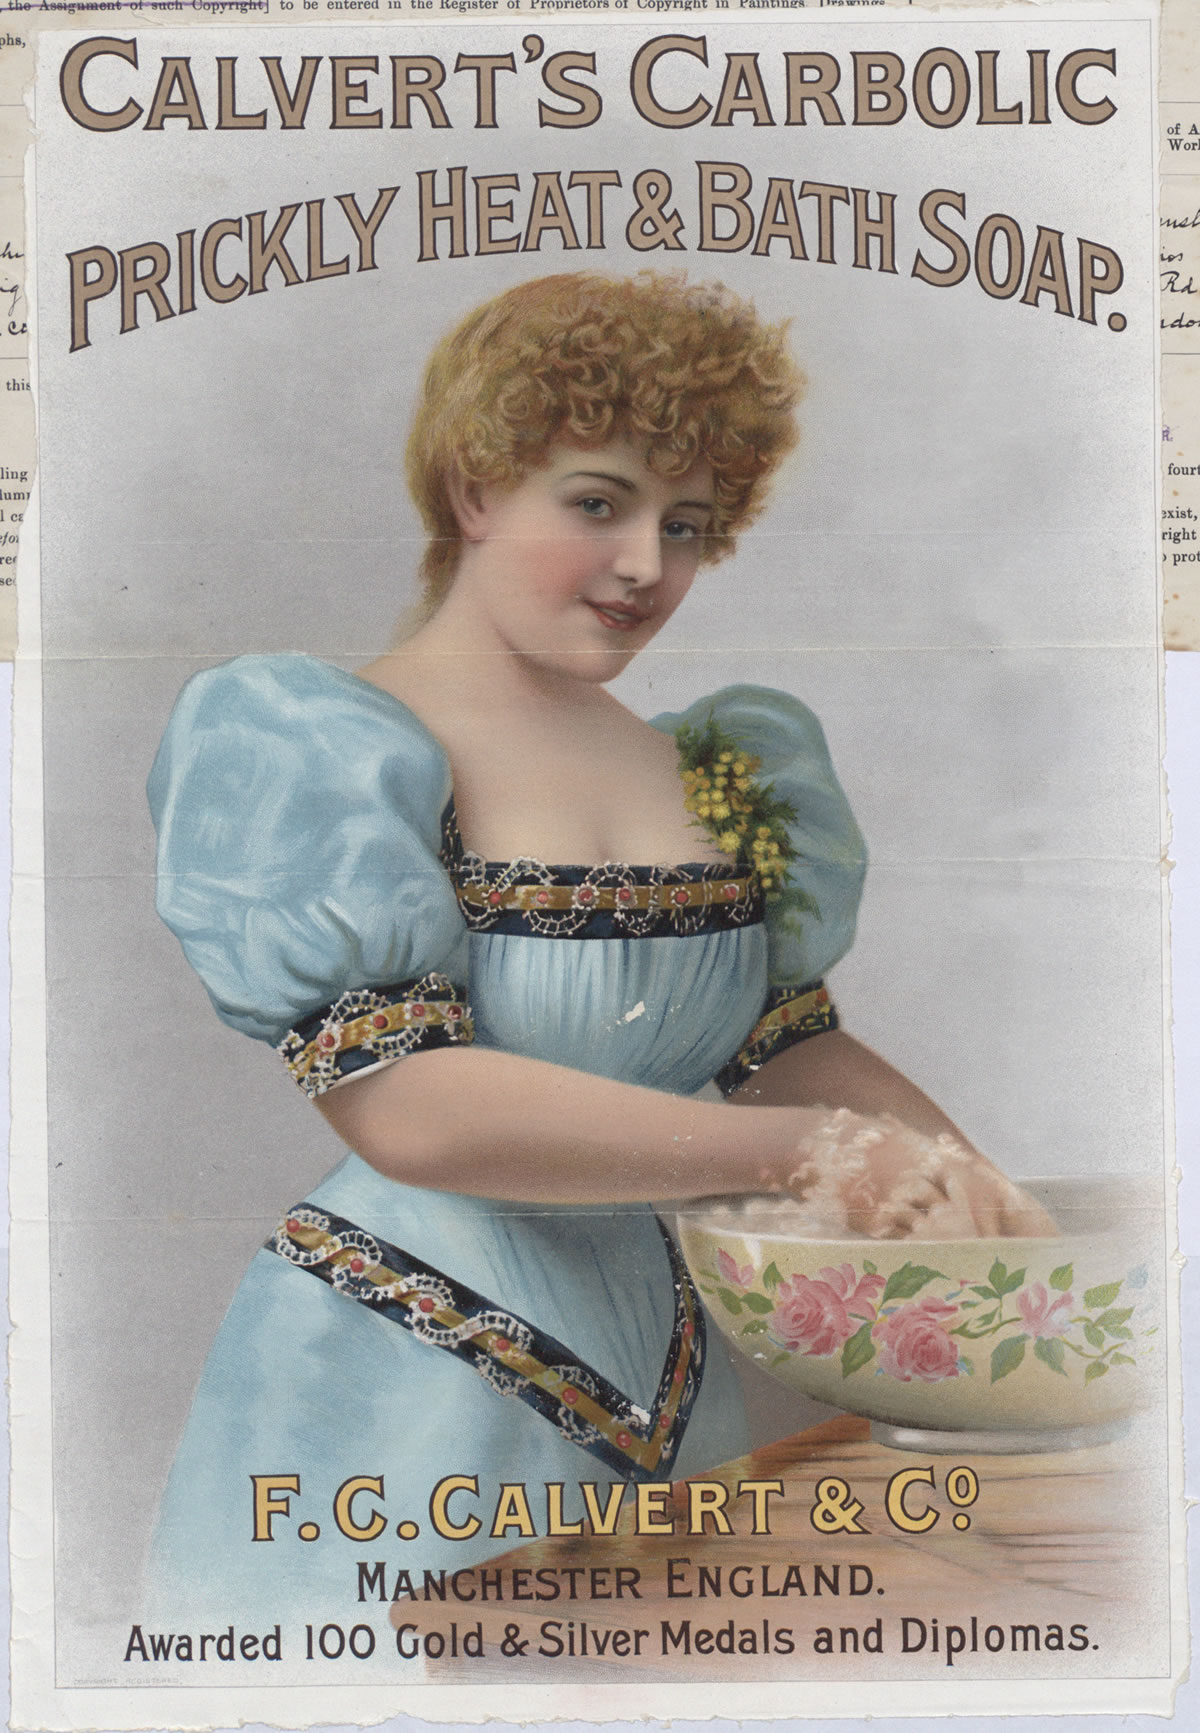 Advertisement for Calvert's carbolic soap, a mild disinfectant soap used for household cleaning, 1899 (COPY 1/146 f.634)